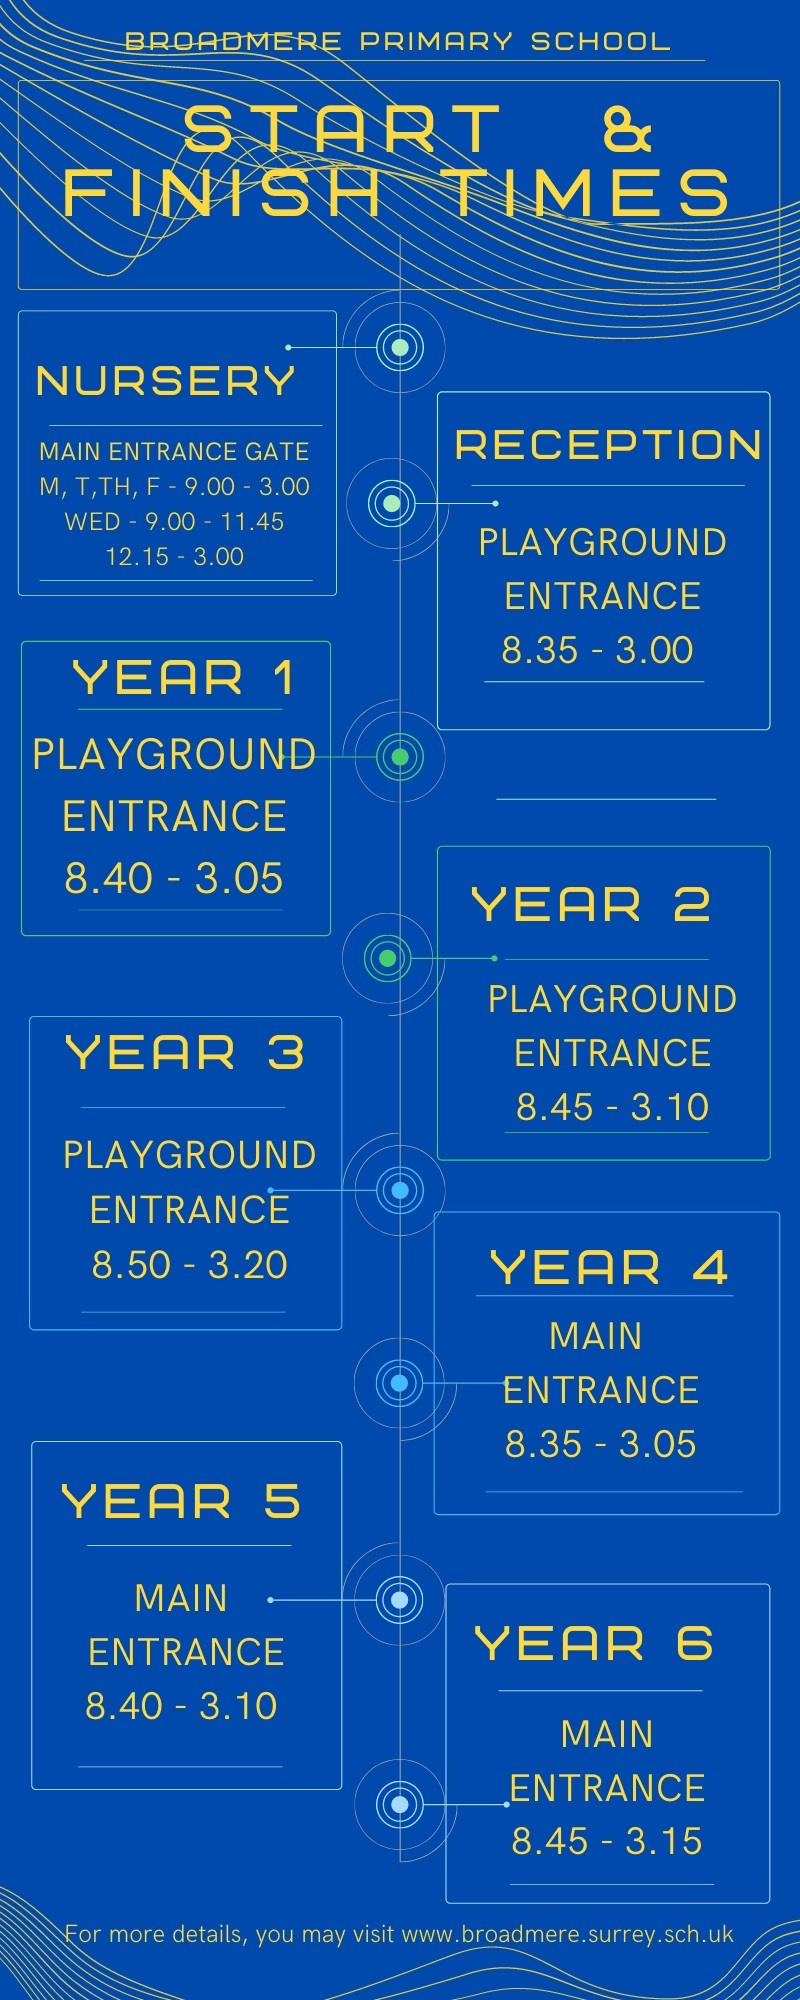 Broadmere Primary School Start and Finish times 01 03 21